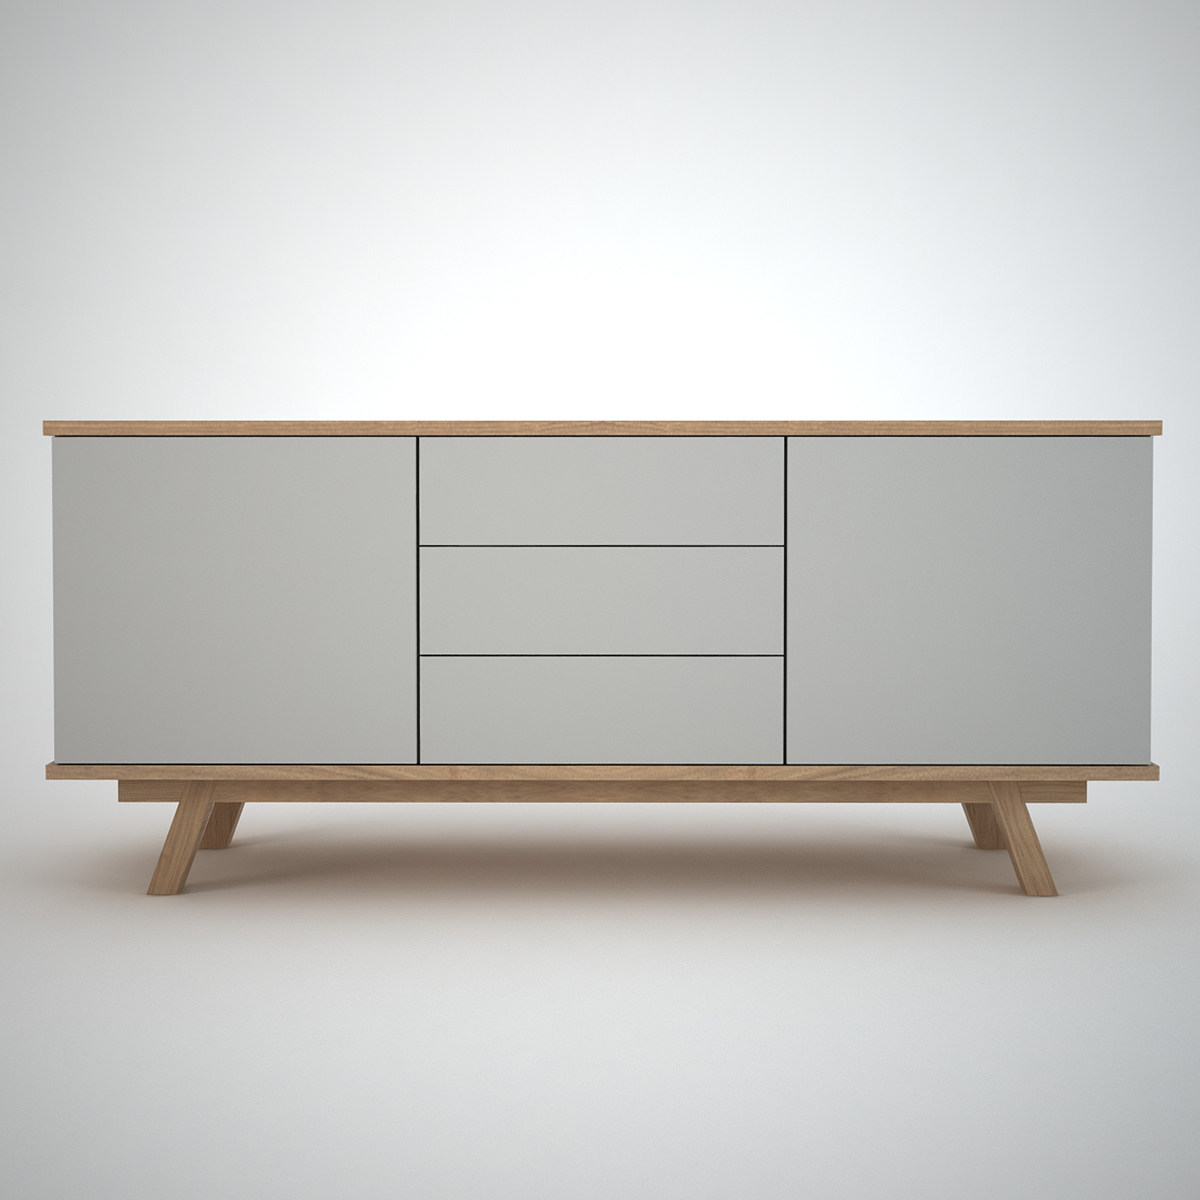 ottawa sideboard 2 3 clay join furniture. Black Bedroom Furniture Sets. Home Design Ideas